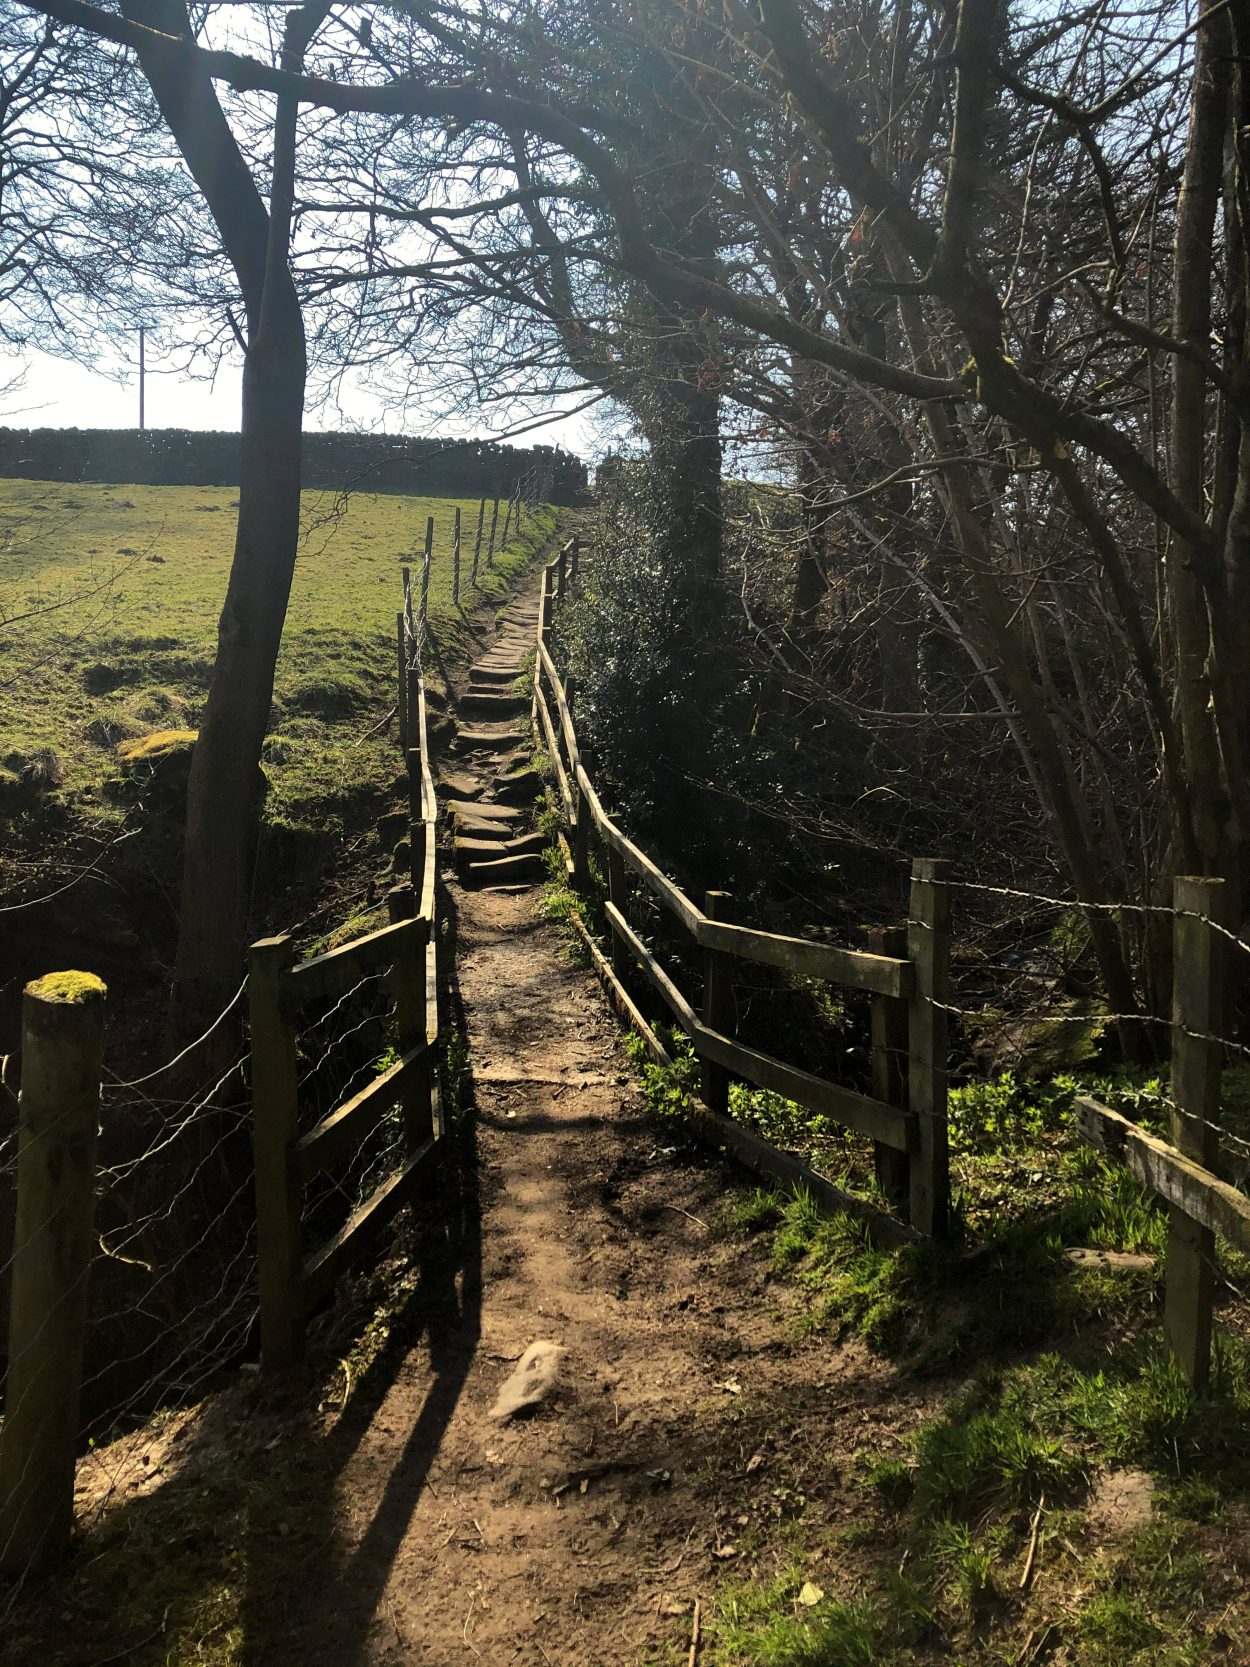 A public footpath with stairs in Addingham, West Yorkshire